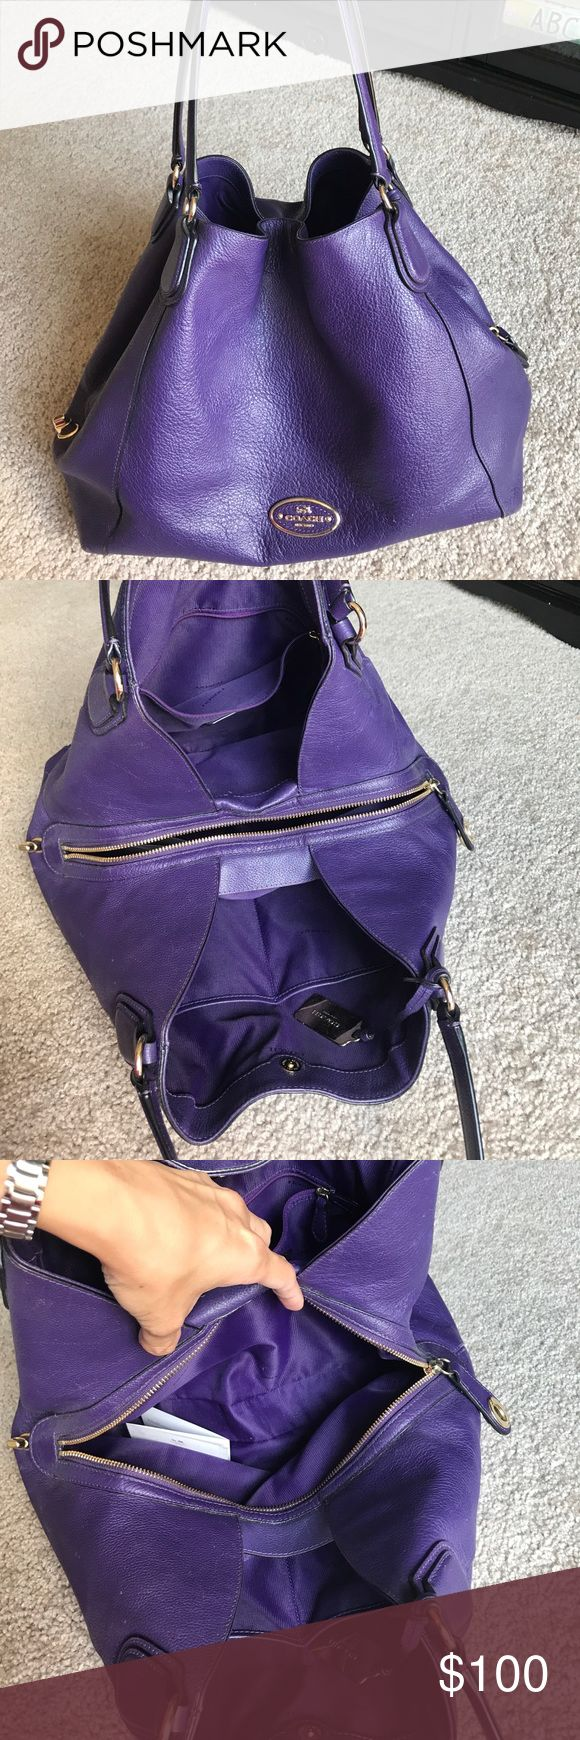 Purple coach purse Well used but fairly clean coach purse. Bought from coach store but received as gift so no receipts. Lots of pockets and a lock for center zip pocket. Coach Bags Shoulder Bags